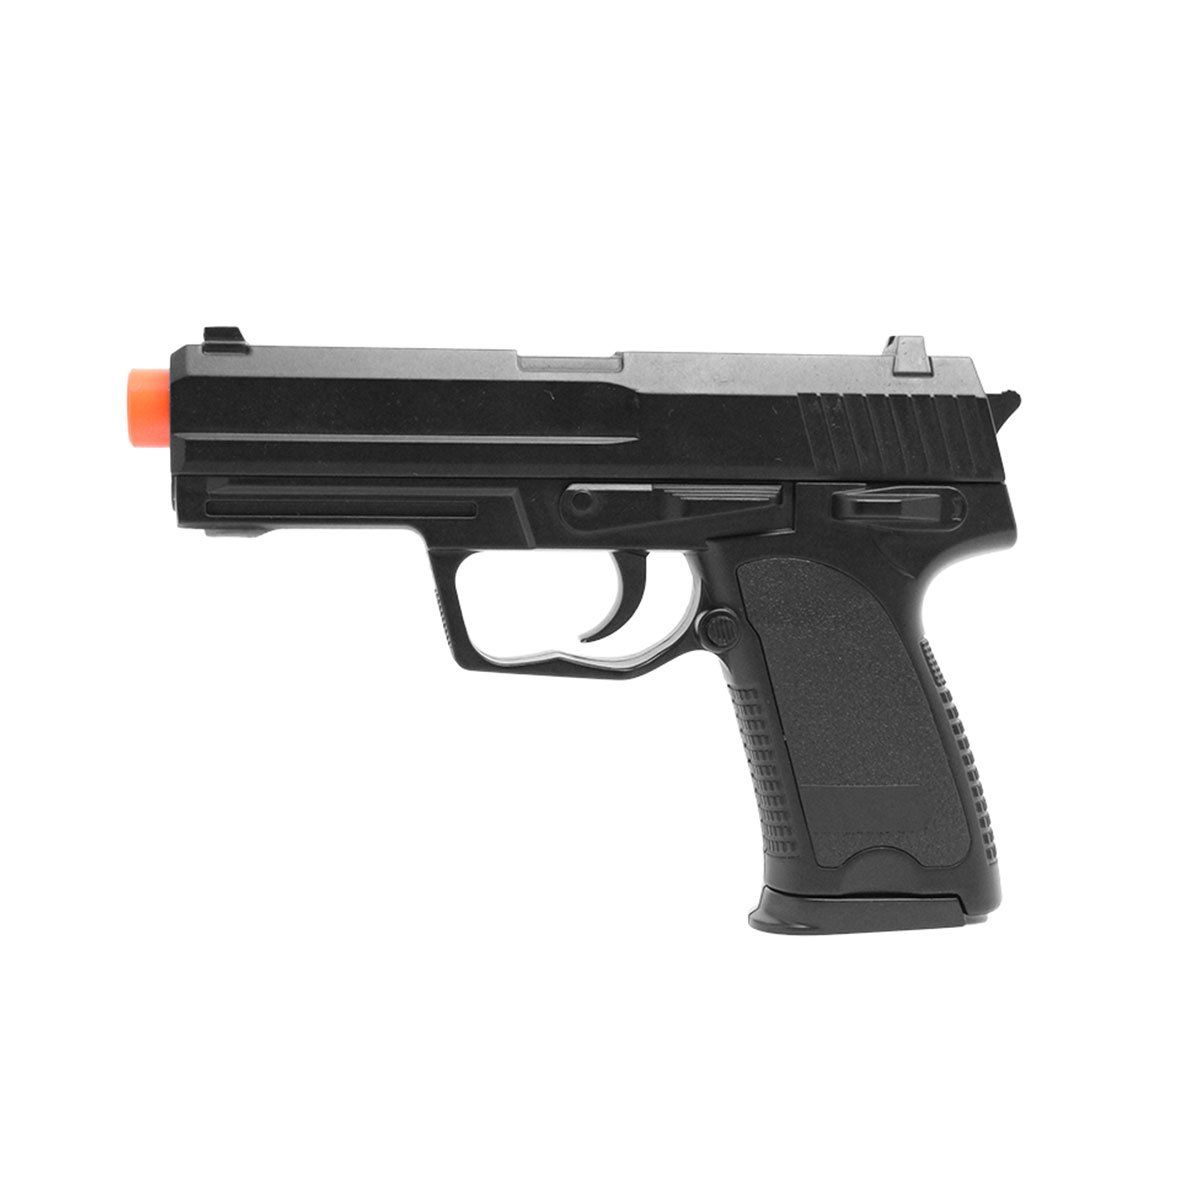 Pistola de Airsoft Cyma ZM20 Full Metal Spring 6mm